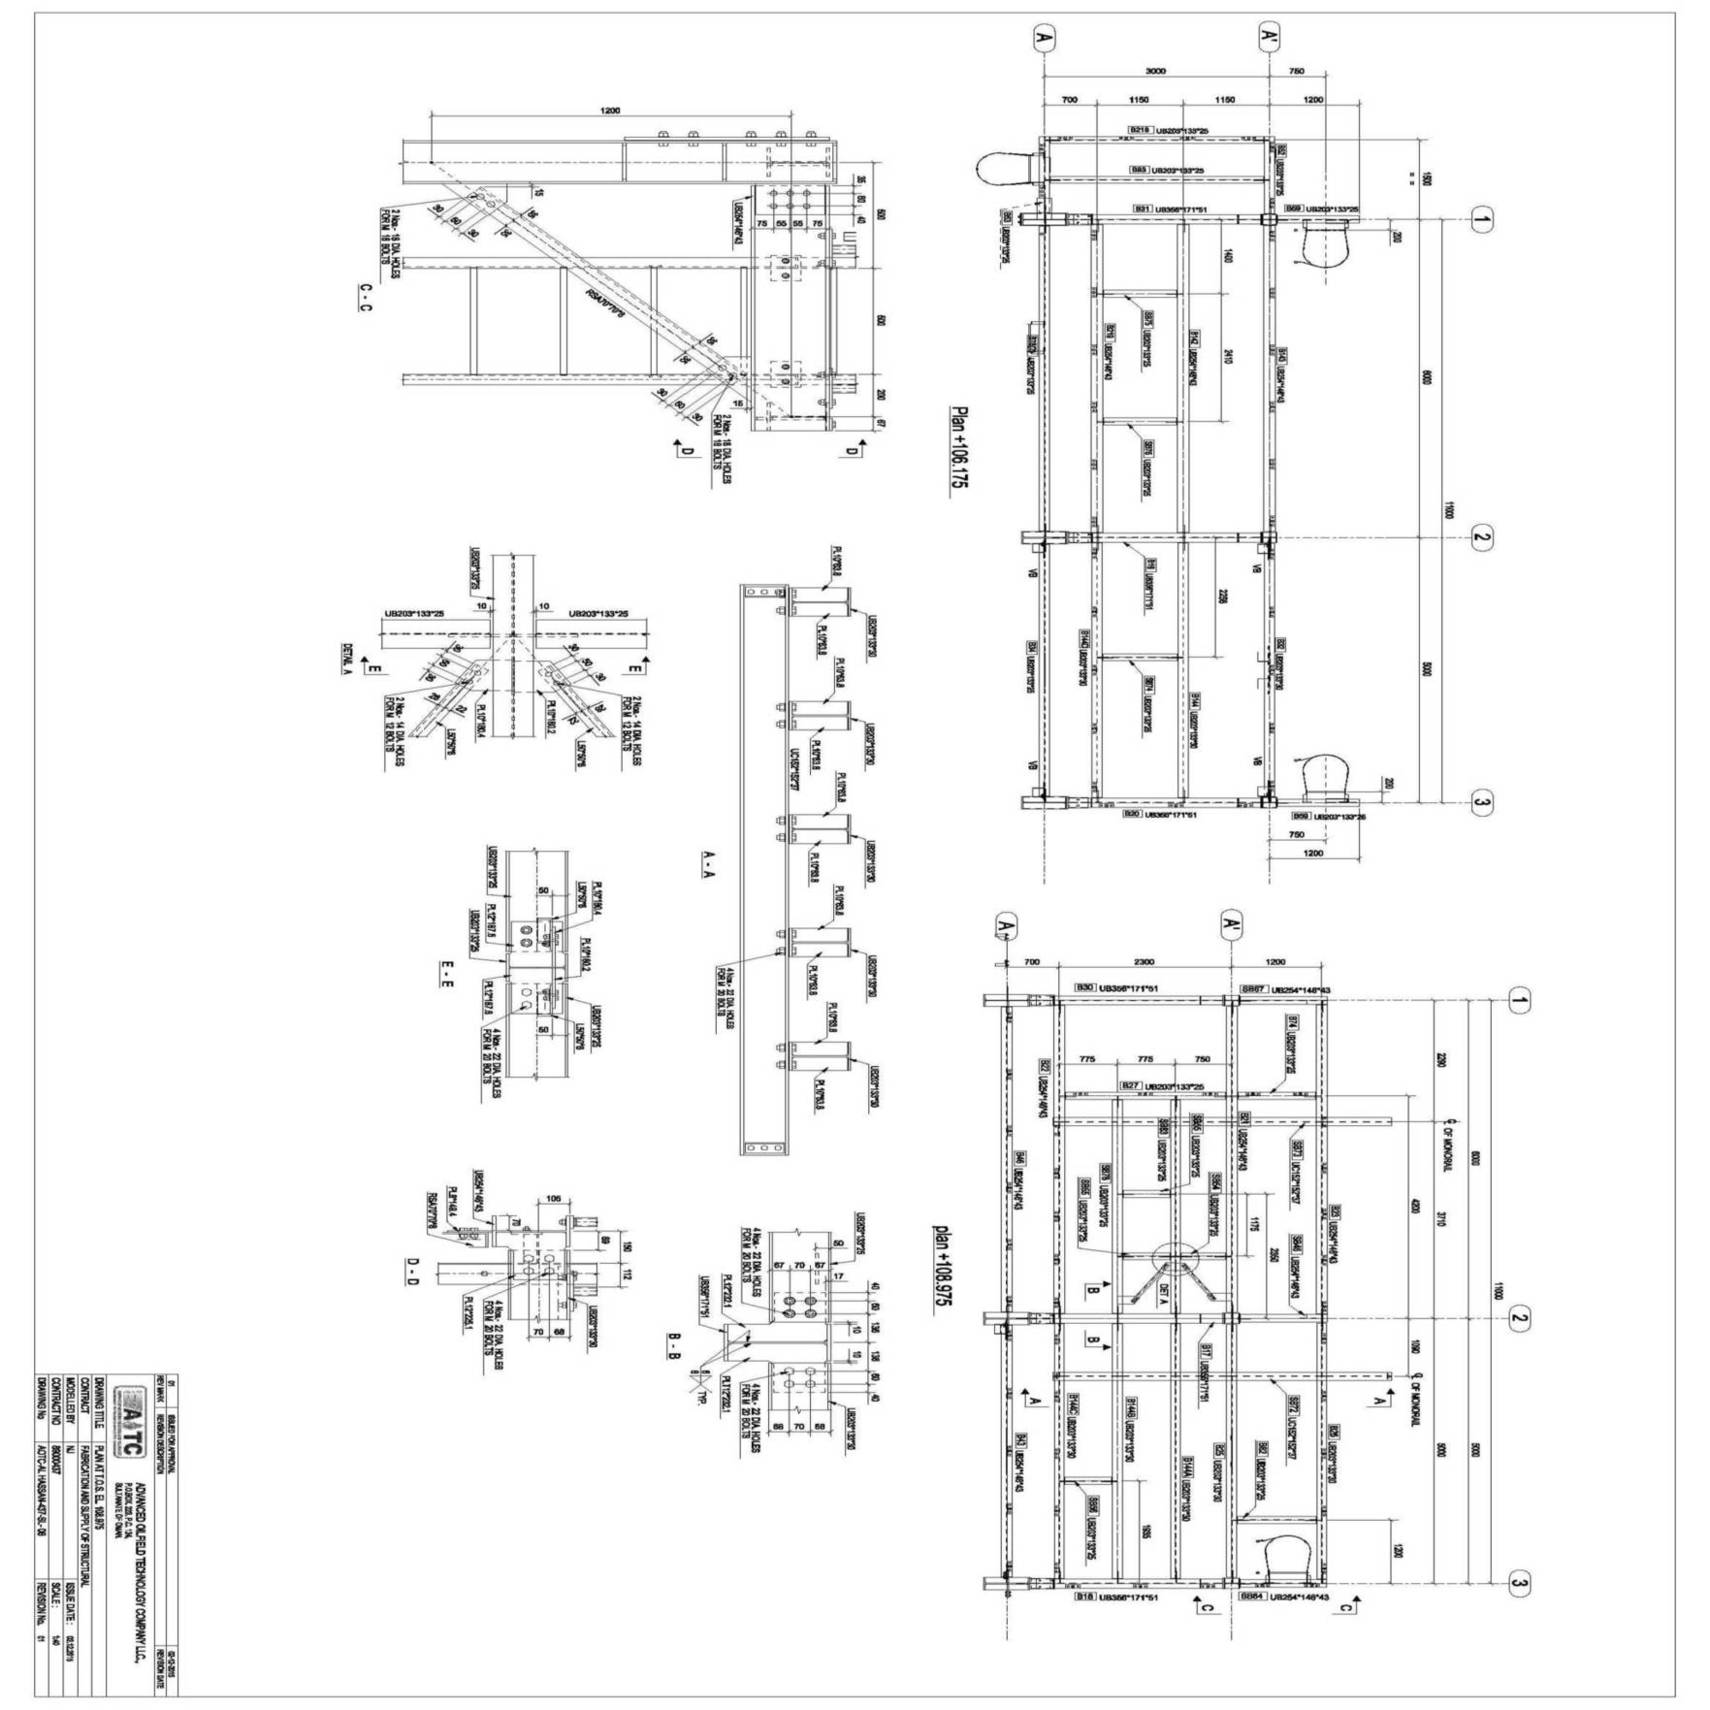 Steel Fabrication Drawings Services - Silicon Info